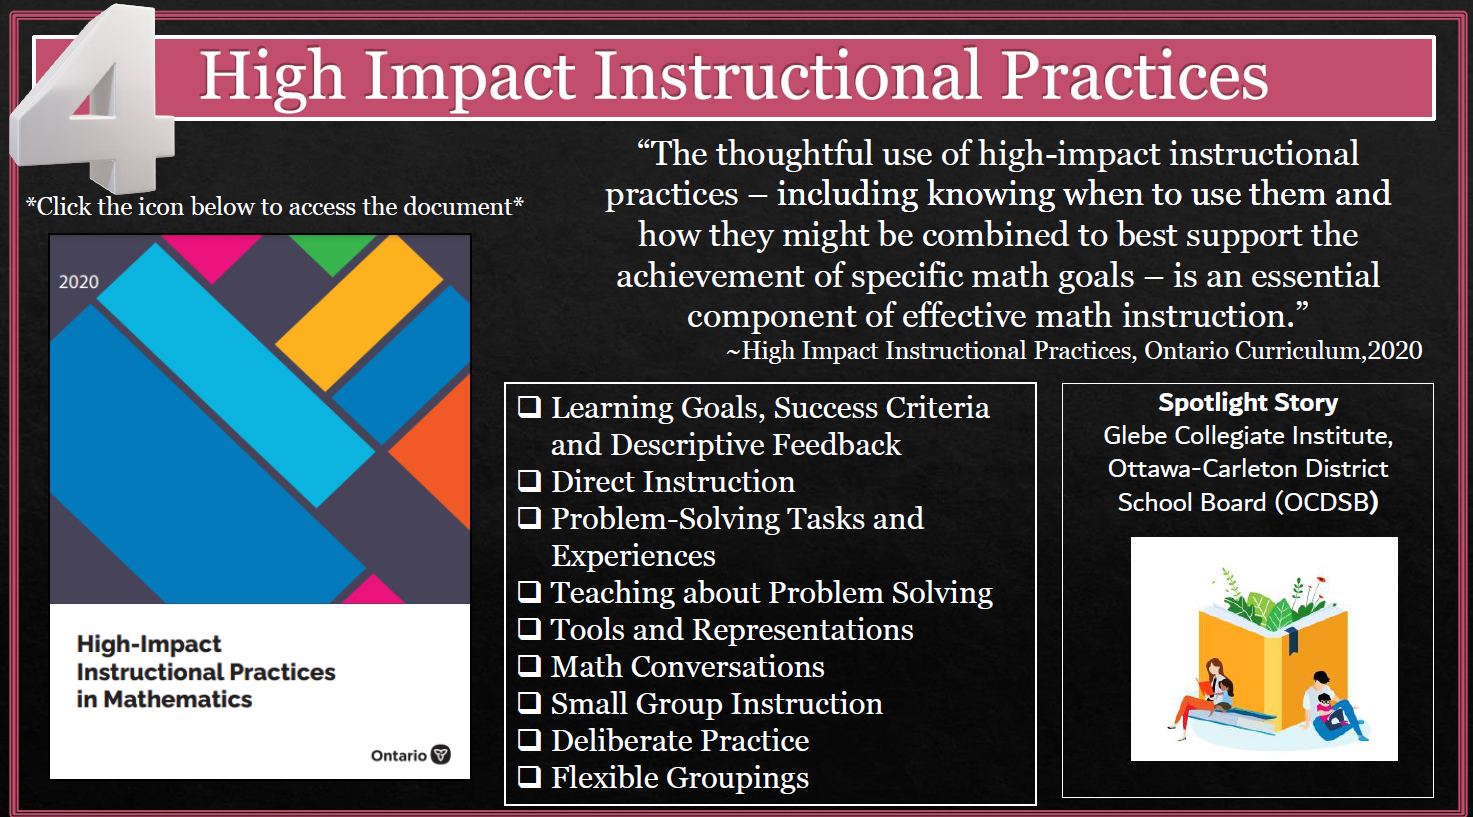 High Impact Instructional Practices in Math